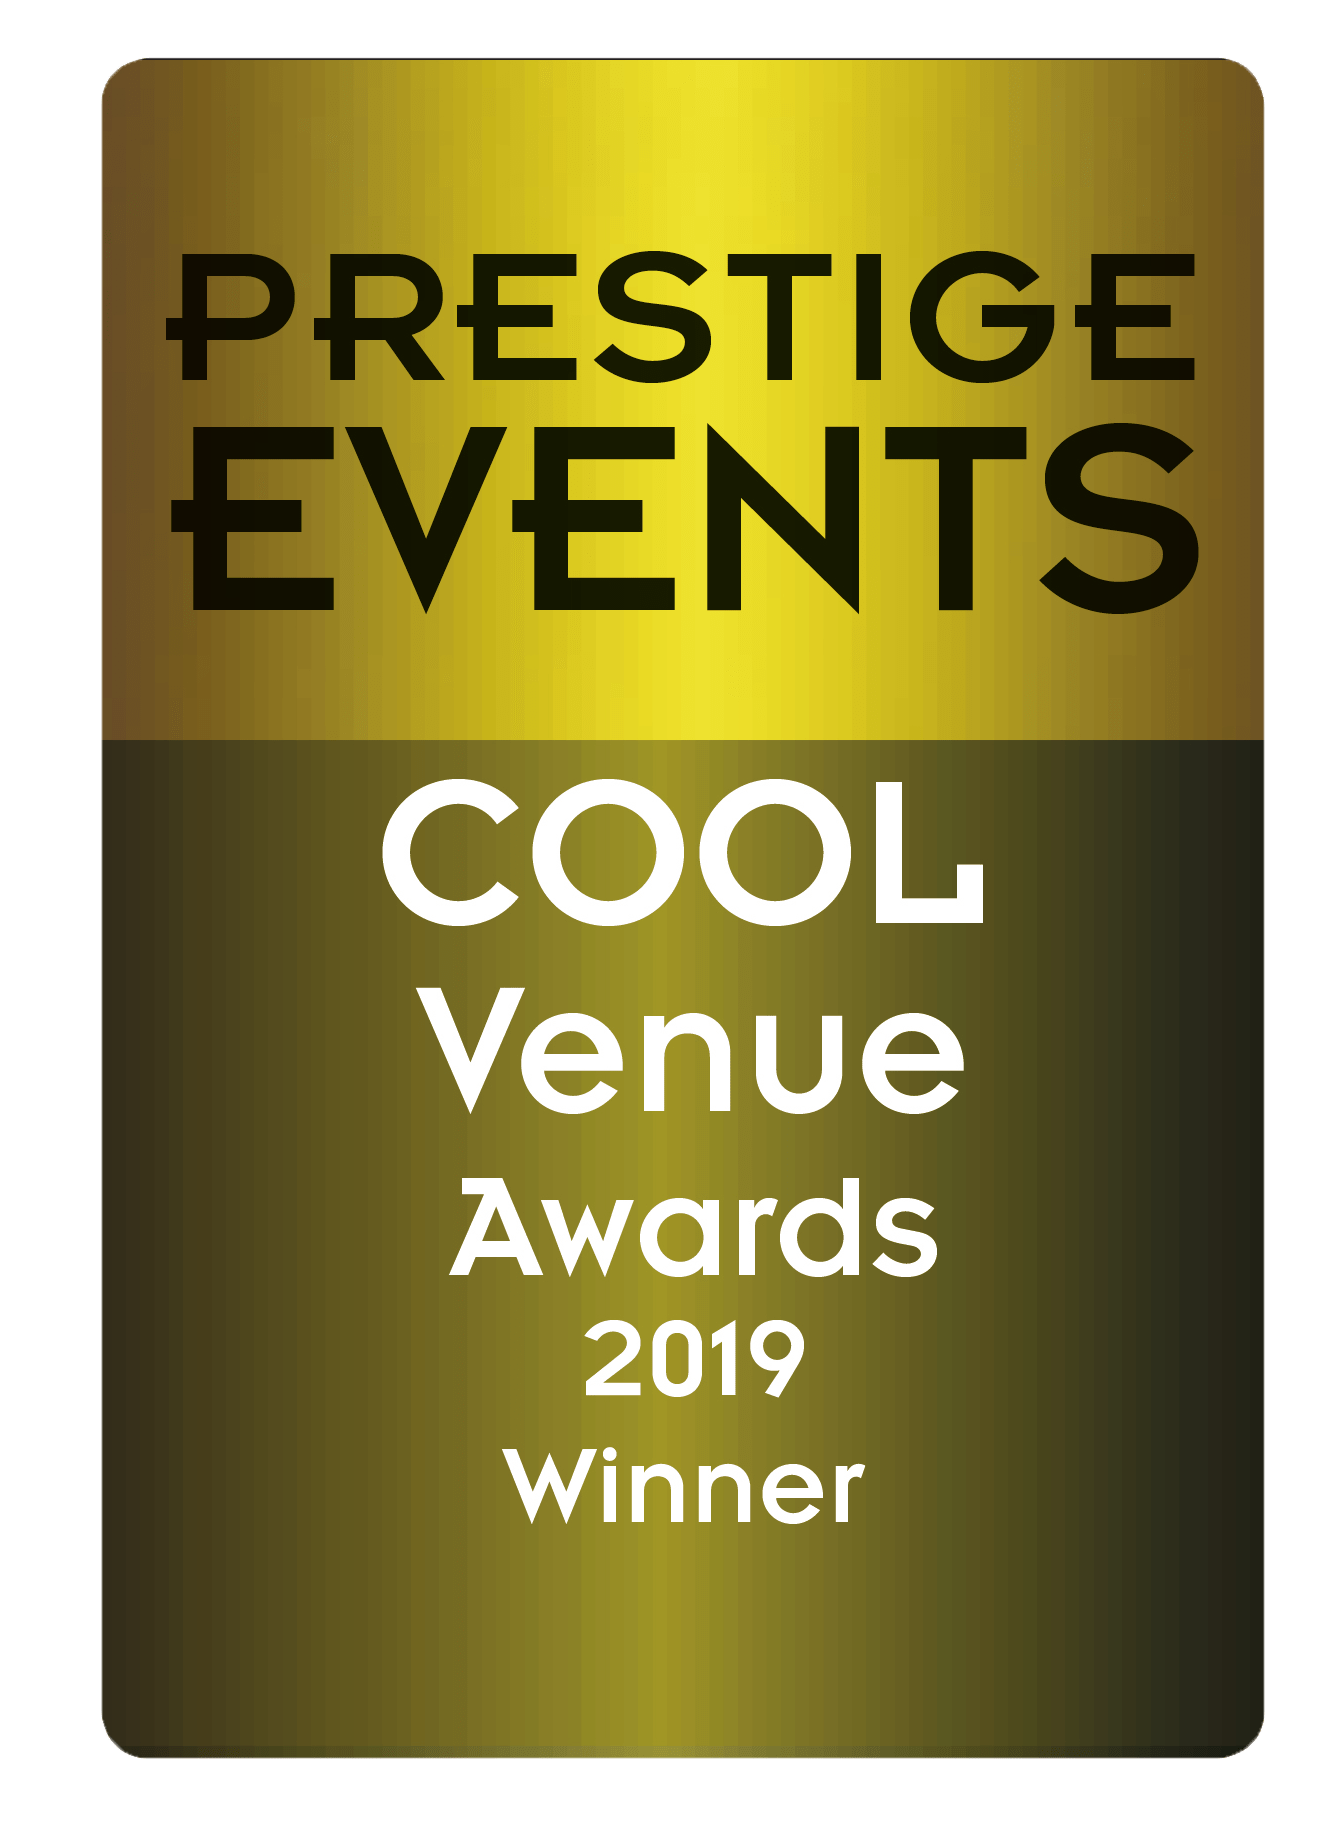 Prestige Events - Cool venue 2019 winner